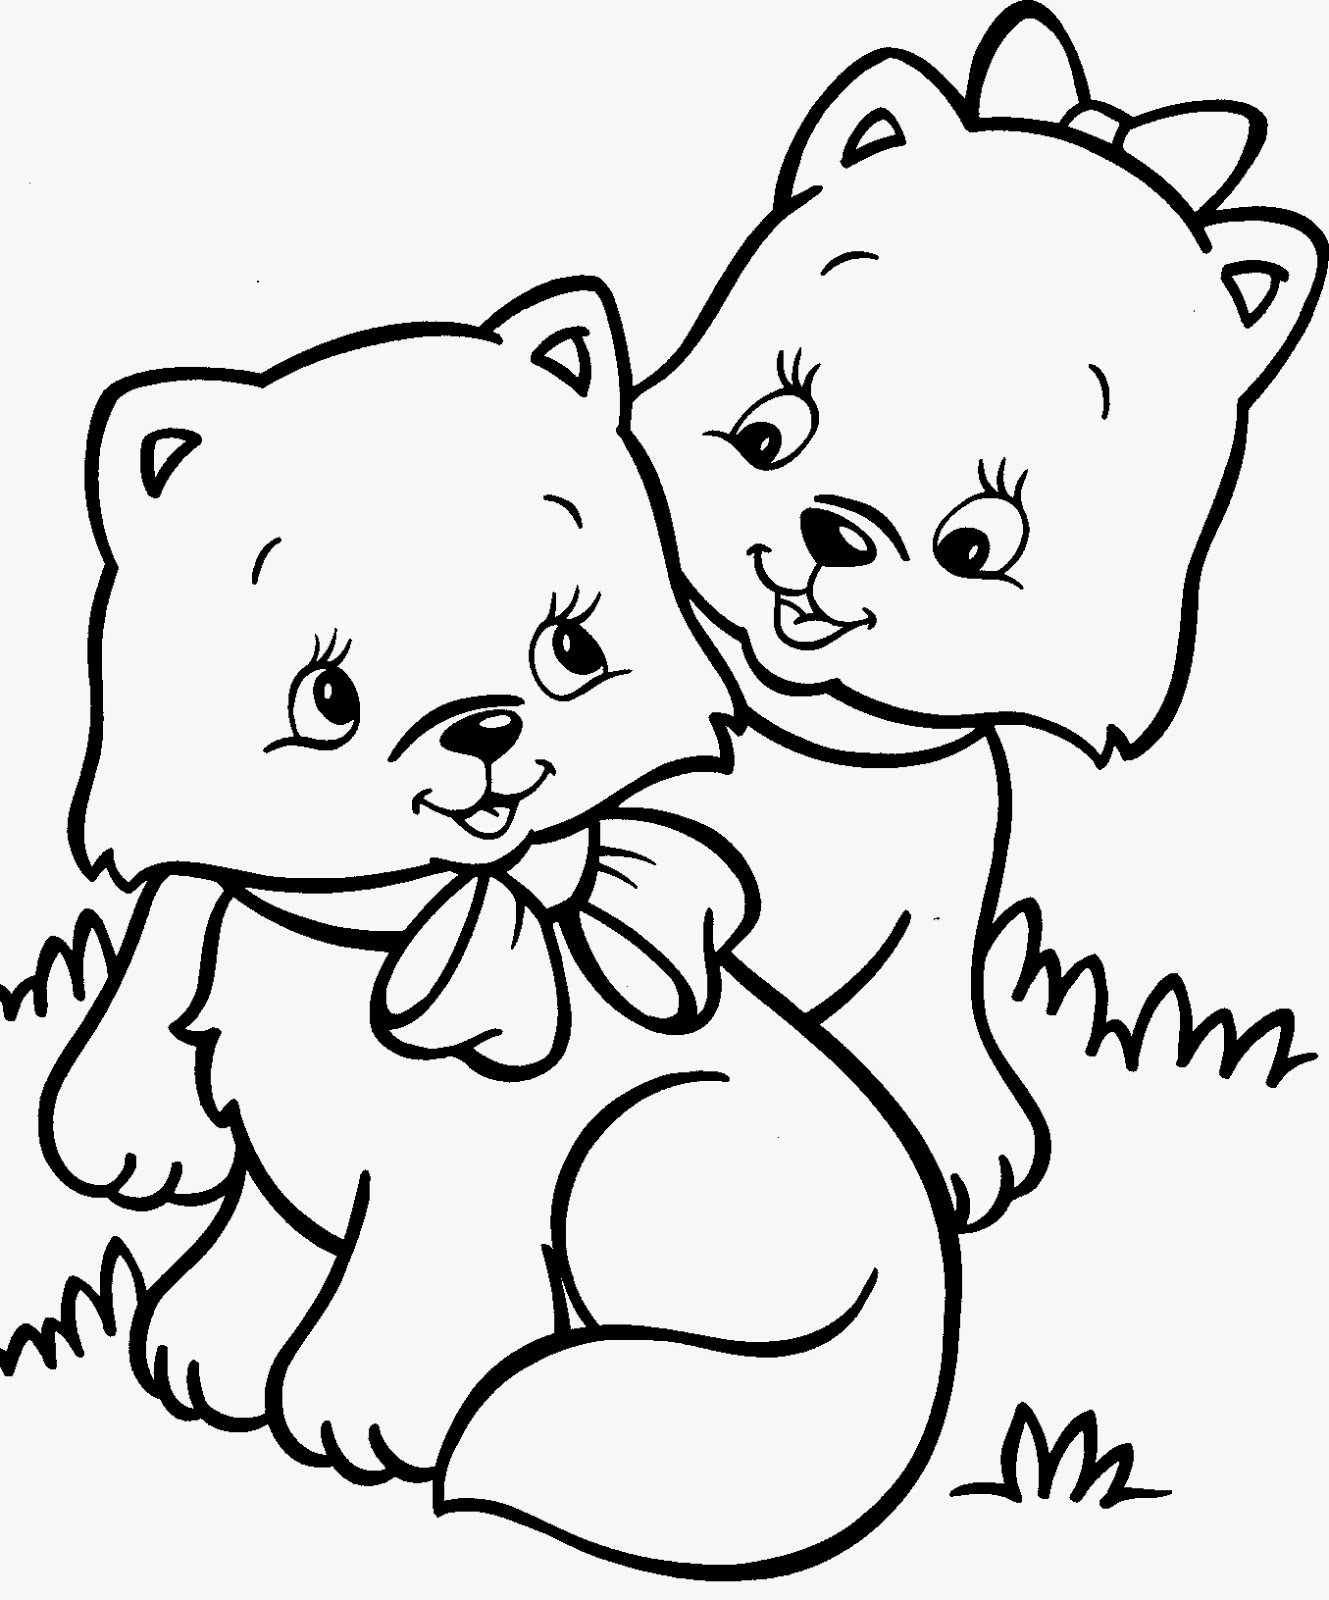 cat pictures to color and print cat for kids simple drawing cats kids coloring pages cat to color pictures print and